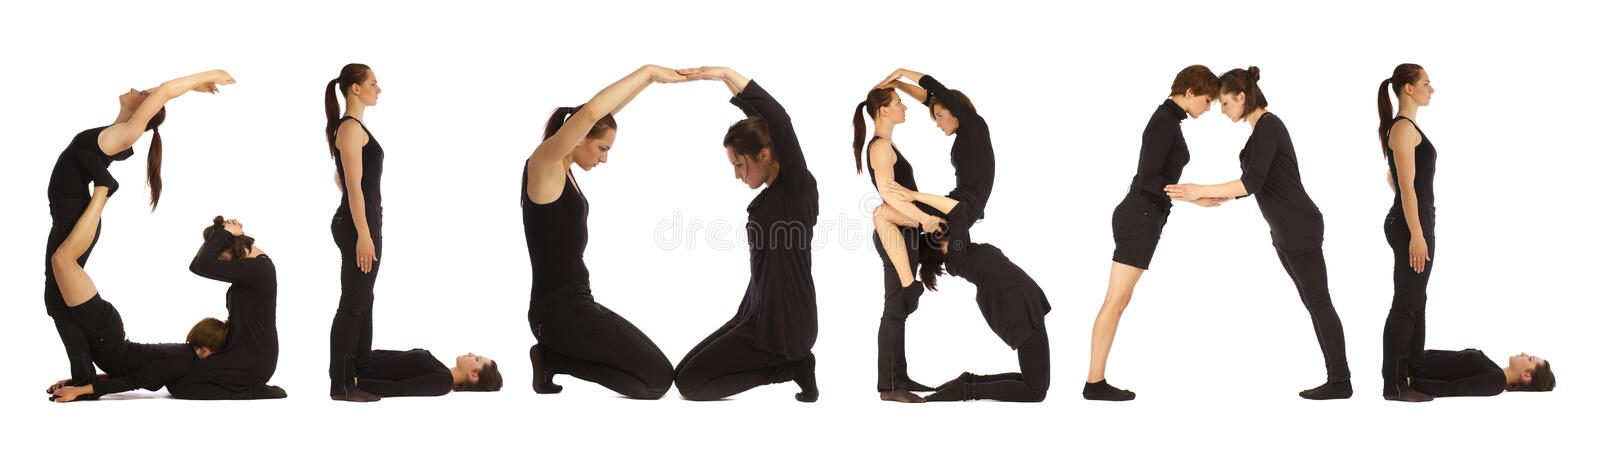 Download Black Dressed People Forming GLOBAL Word Stock Illustration - Image: 96502368